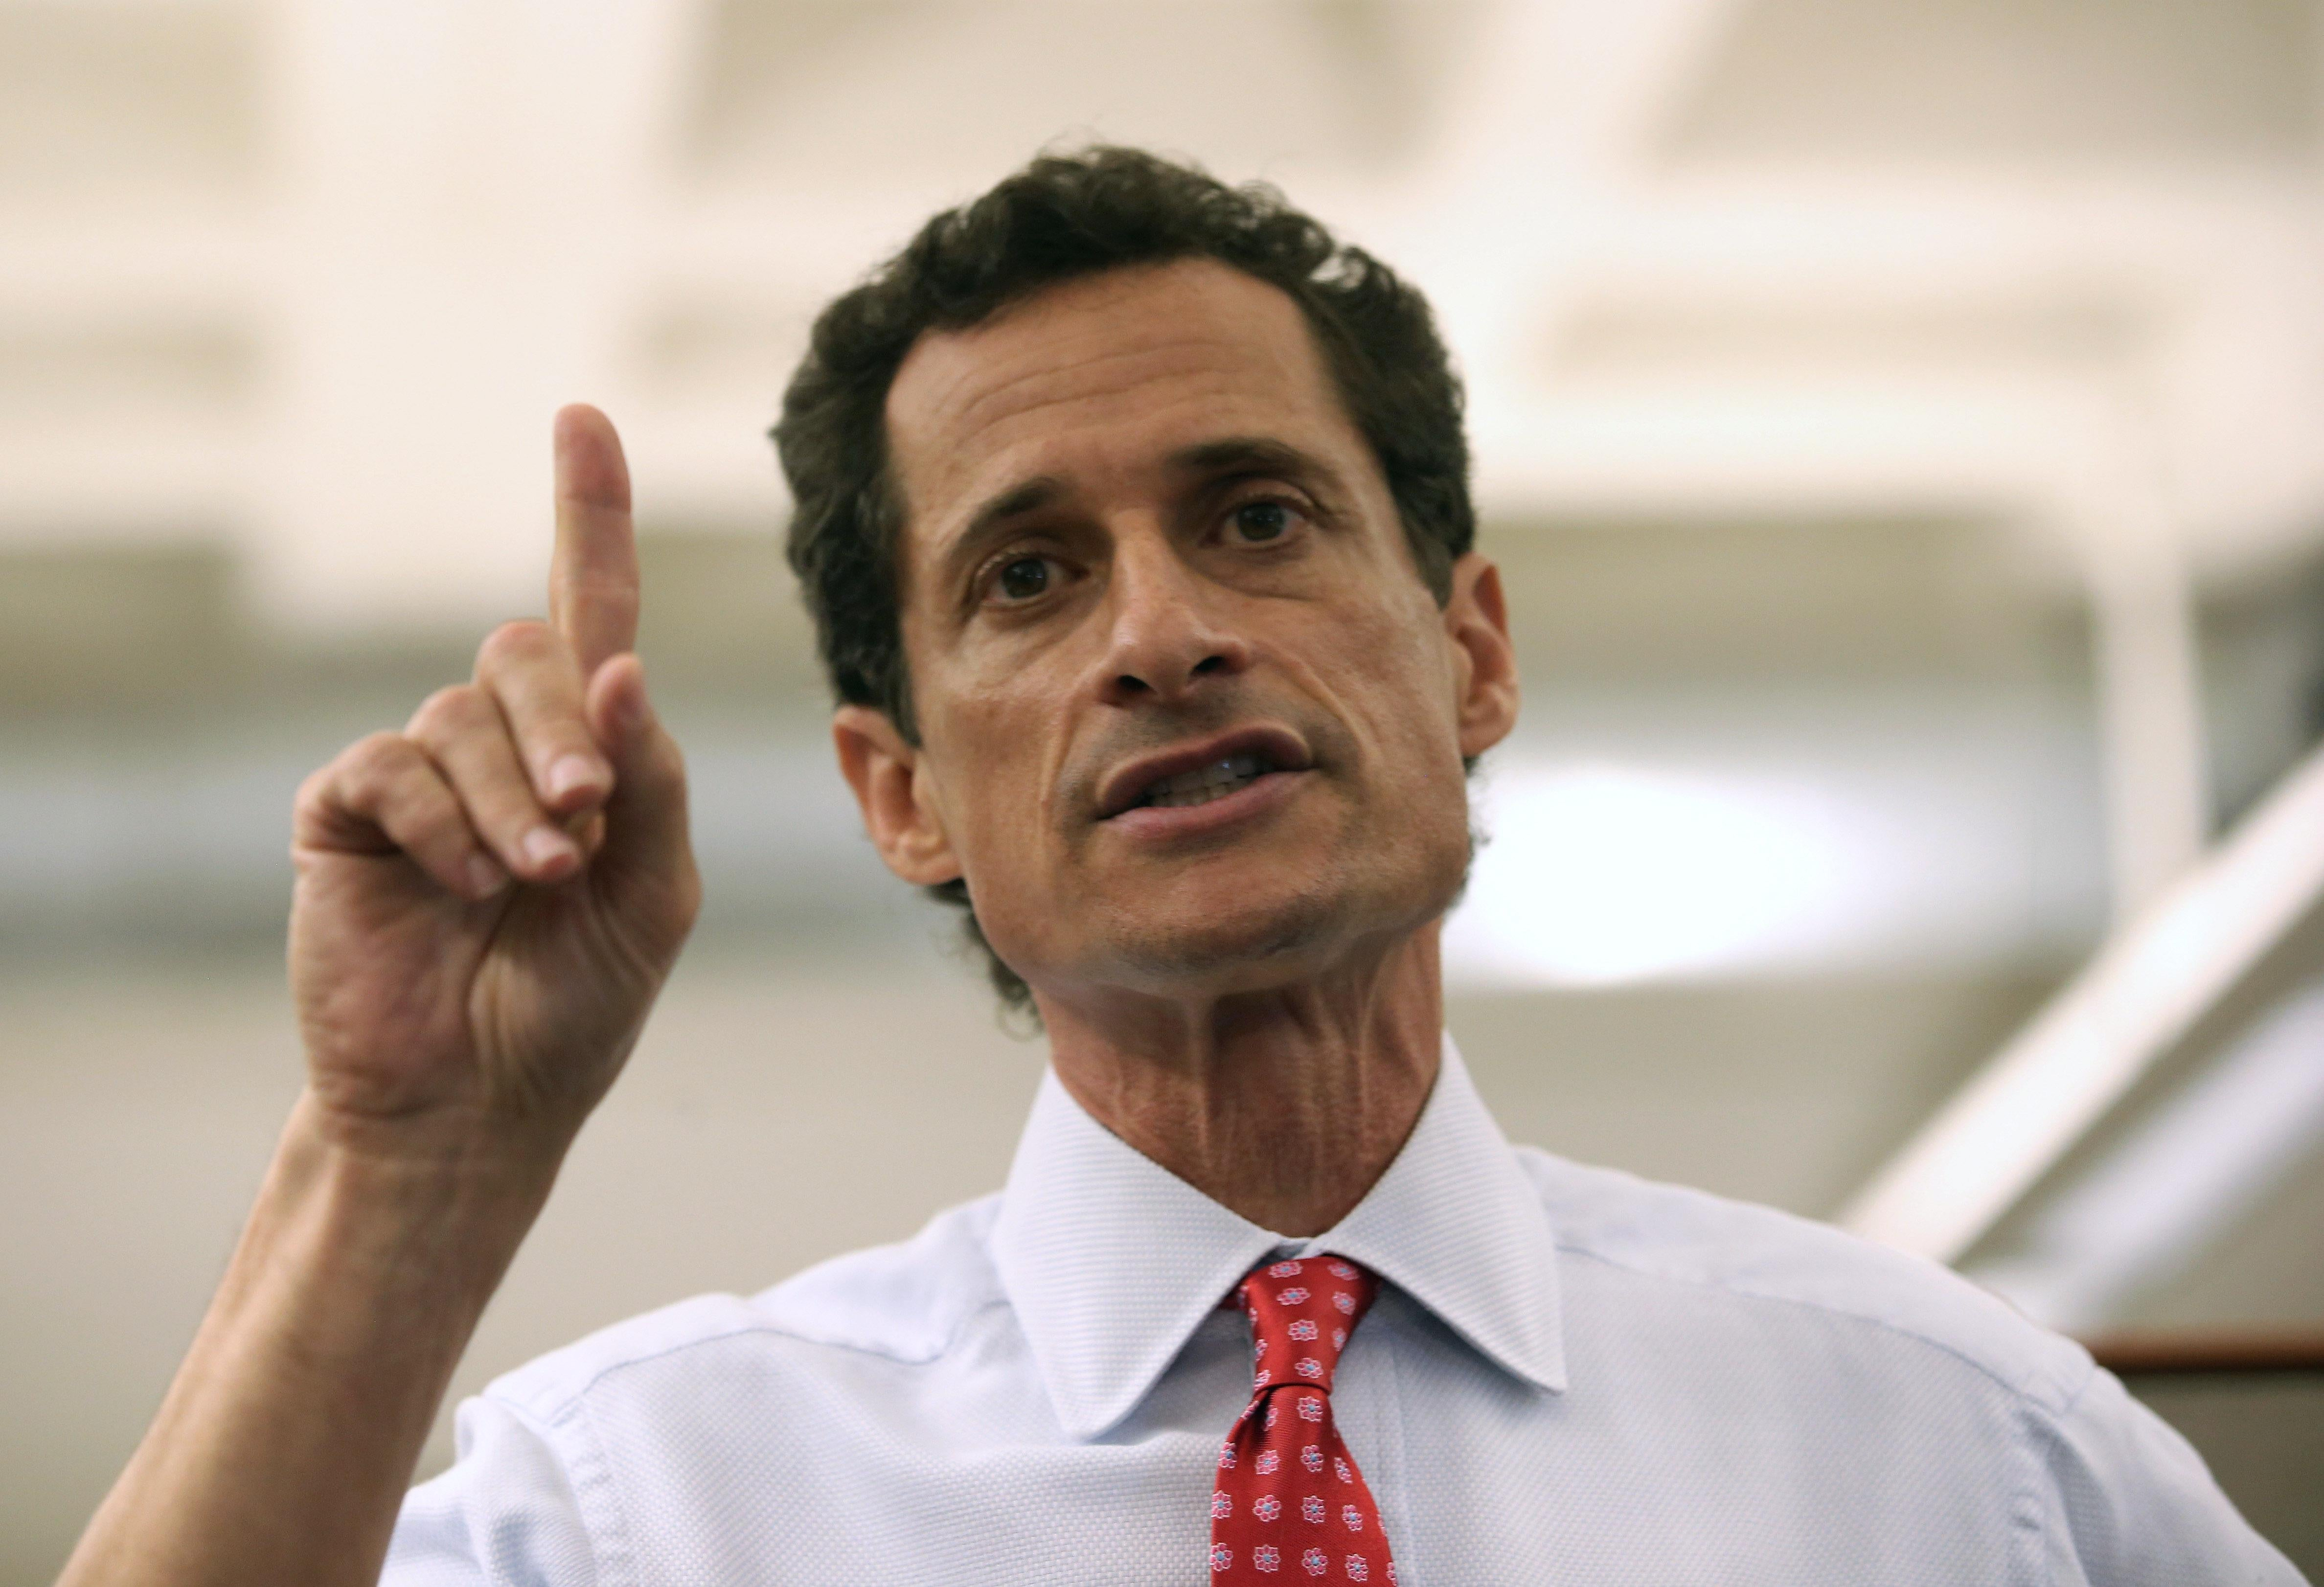 """Anthony Weiner """"bend you over"""" fantasy: When did 'bending people over' become sexual?"""